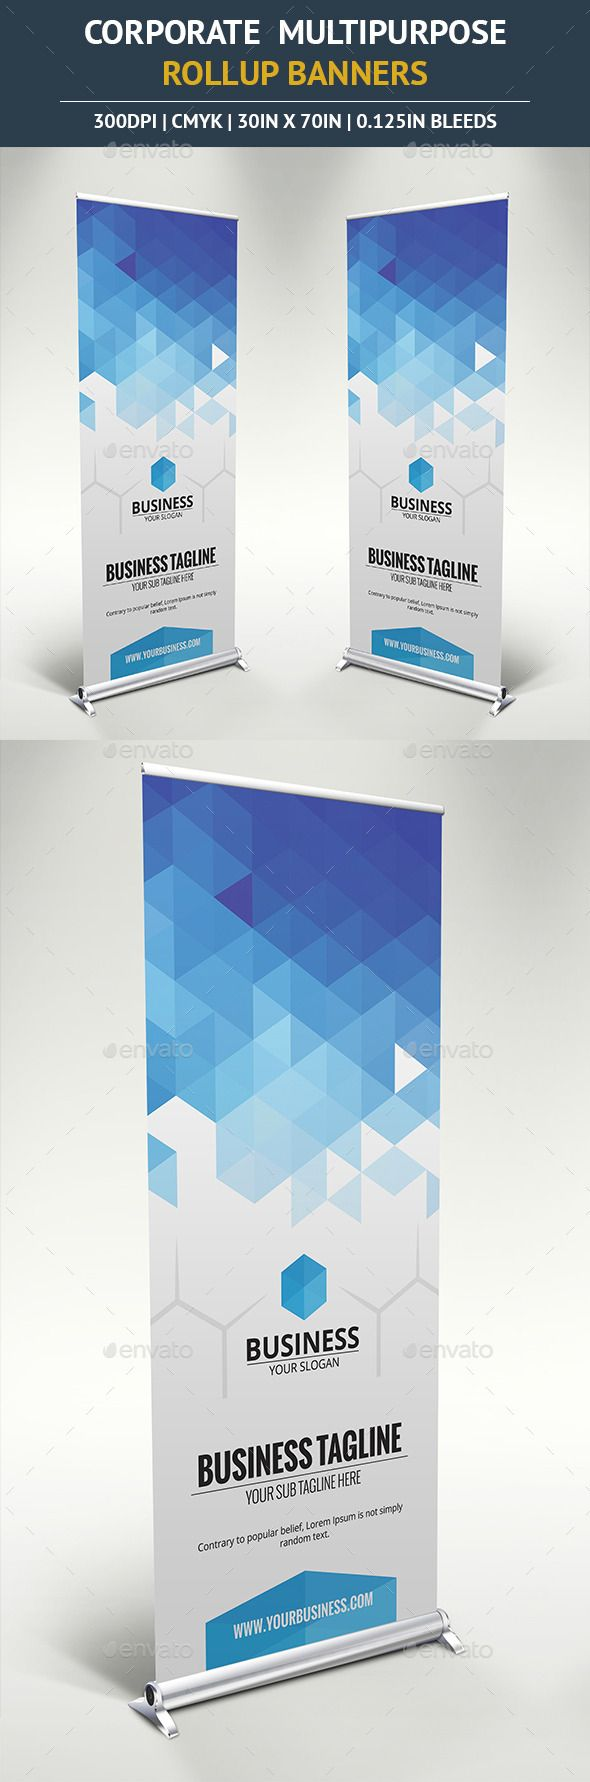 Corporate Rollup Banner Template #design Download: http://graphicriver.net/item/corporate-rollup-banner-vol7/10390843?ref=ksioks